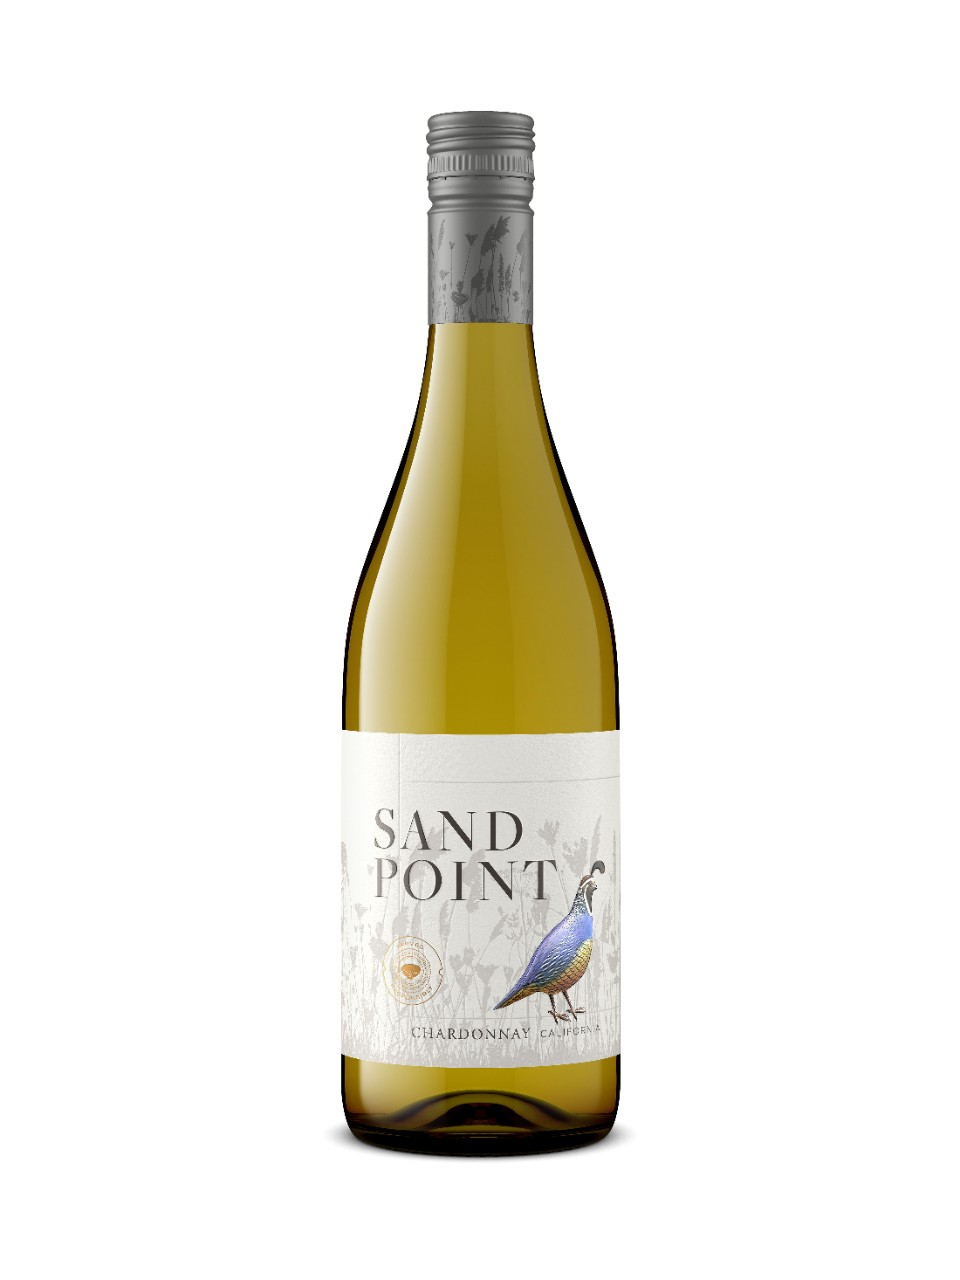 Sand Point Chardonnay from LCBO